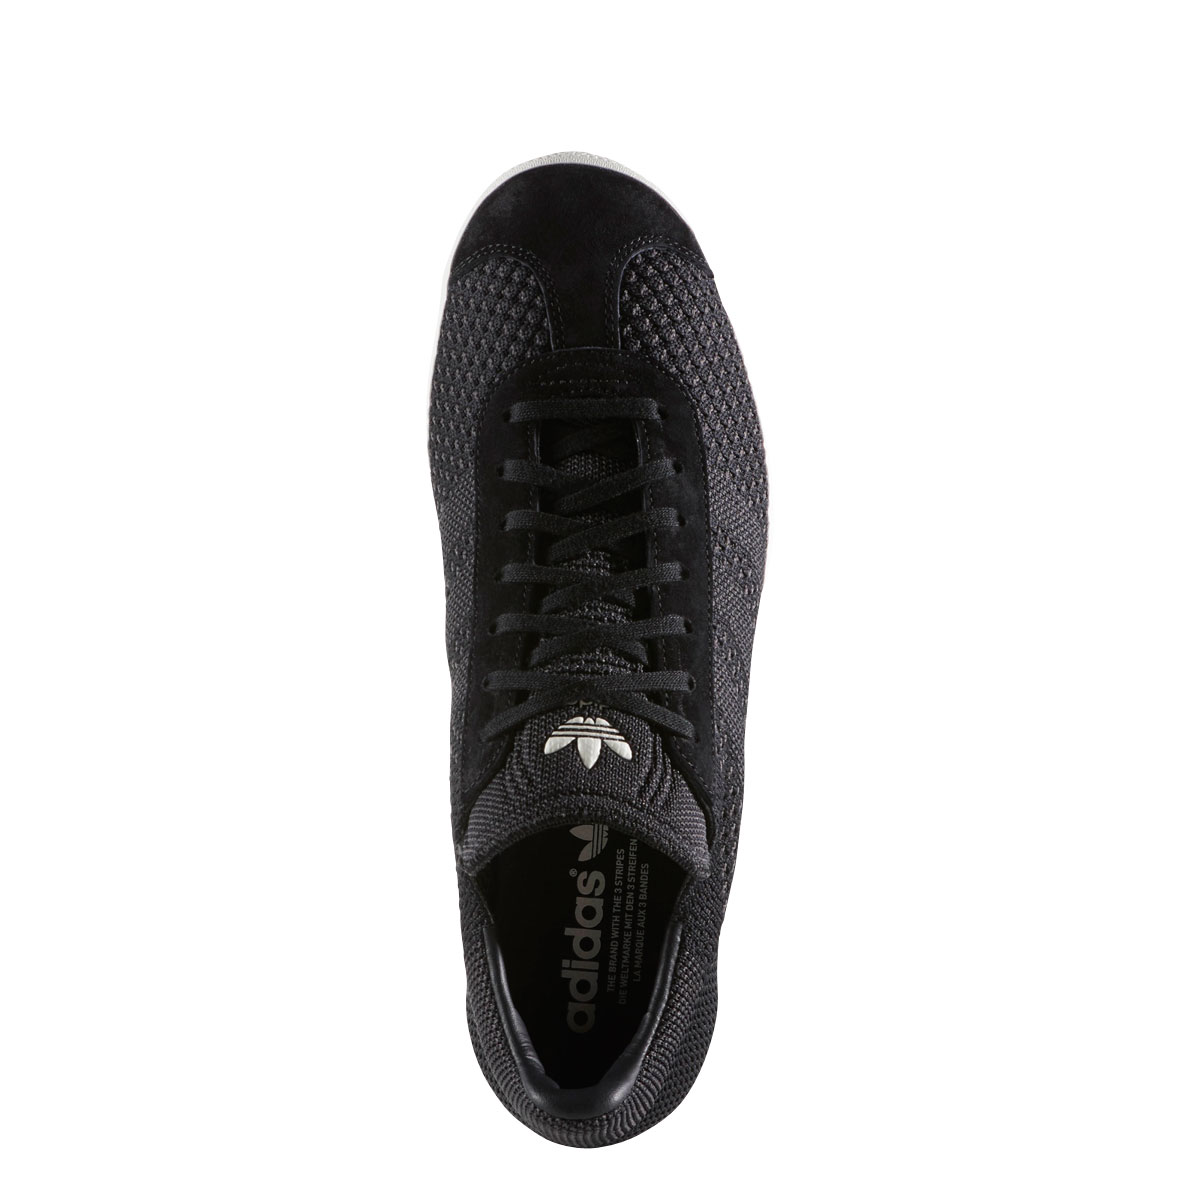 14429fd6239 adidas Originals GAZELLE PK (Adidas originals gazelle PK) CORE BLACK CORE  BLACK OFF WHITE 17FW-I